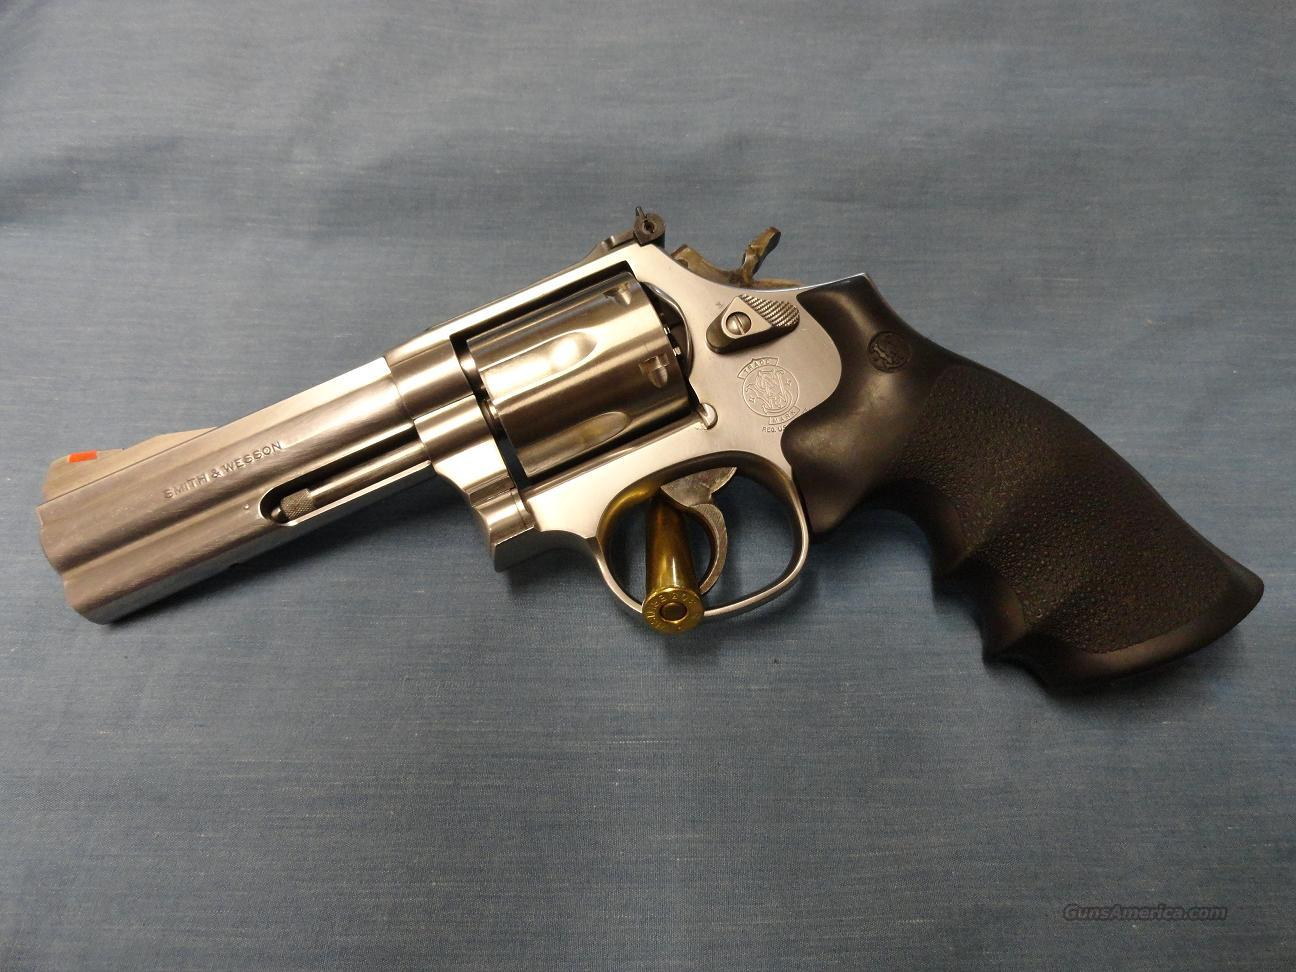 Smith & Wesson Model 686-4 .357 Magnum  Guns > Pistols > Smith & Wesson Revolvers > Full Frame Revolver